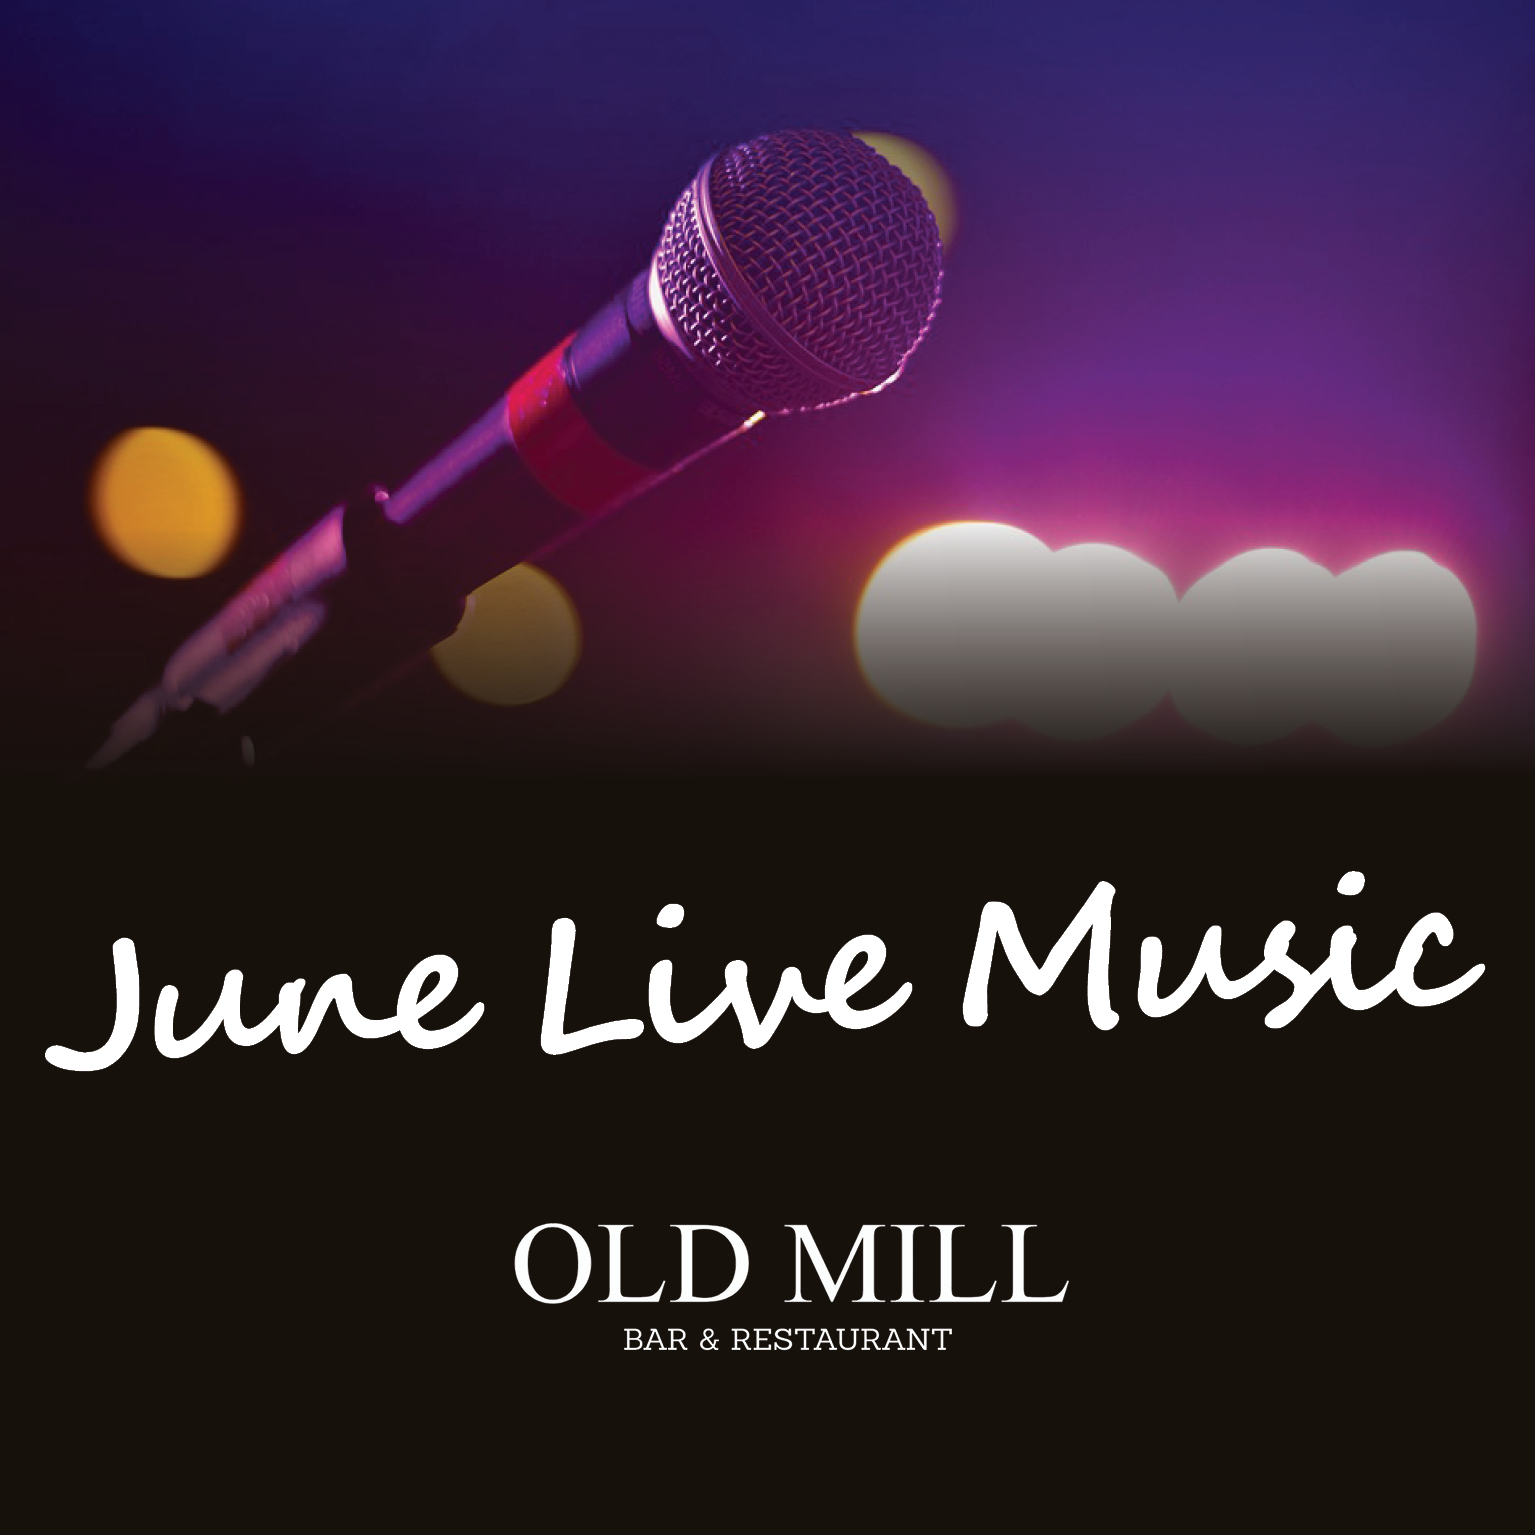 Live Music in June at The Old Mill Tallaght.